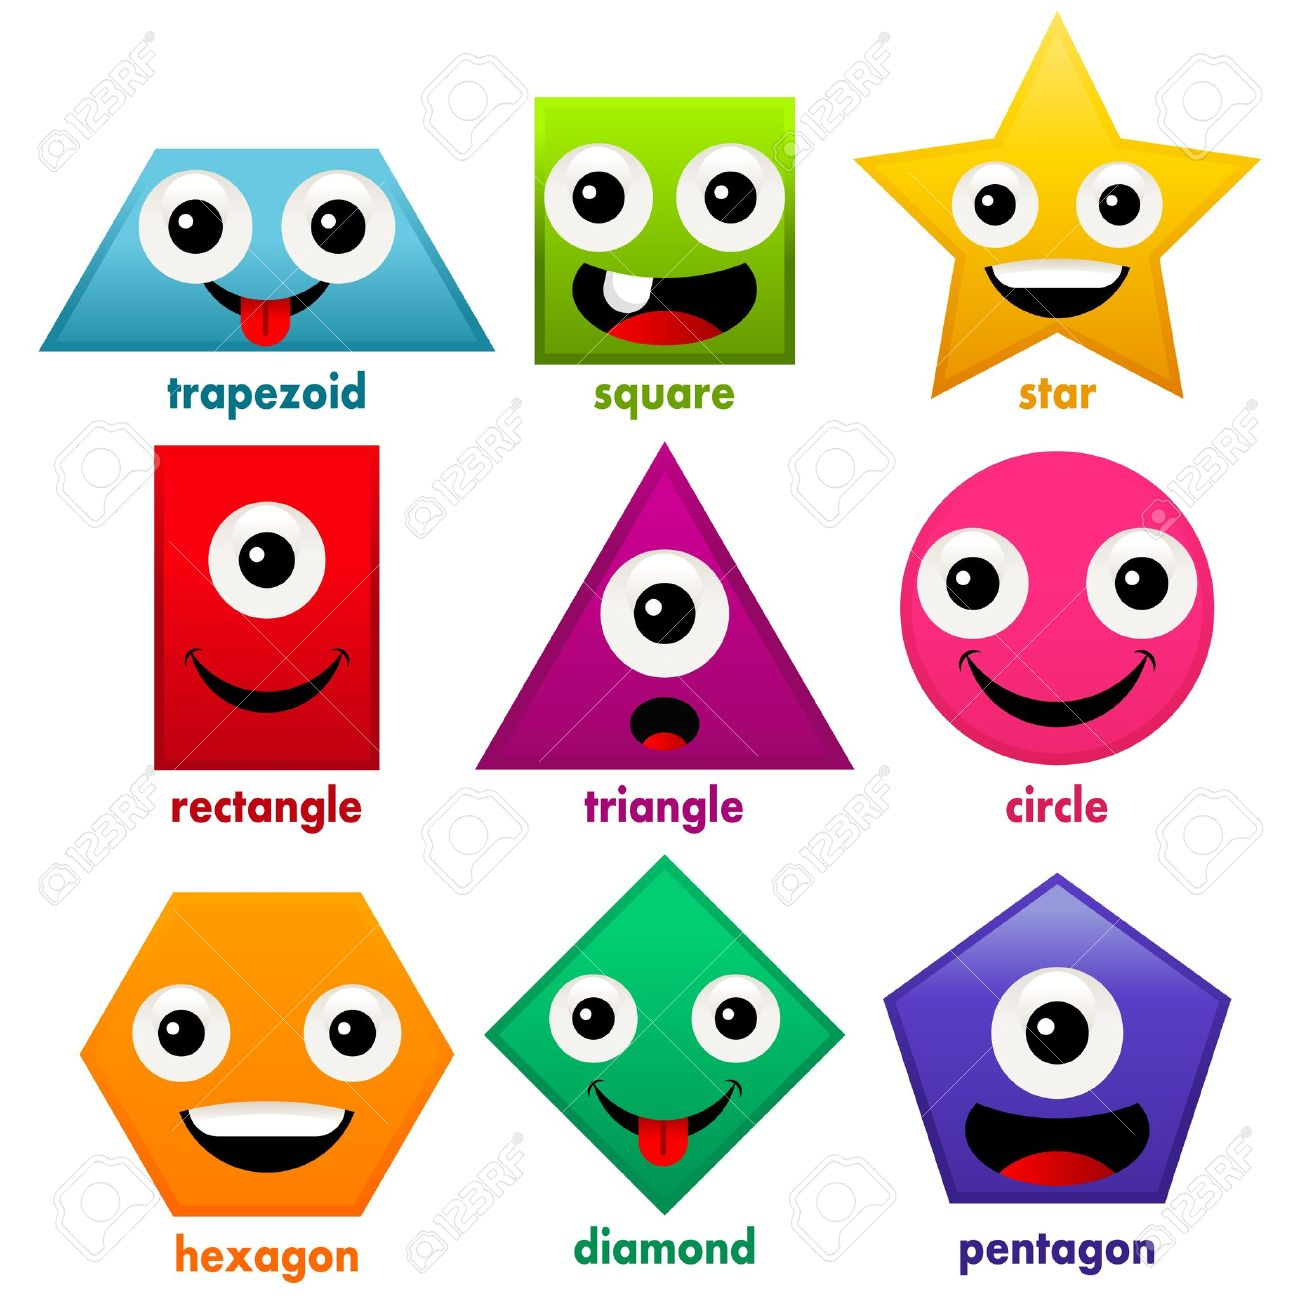 Clipart shapes basic shape. Square free download best